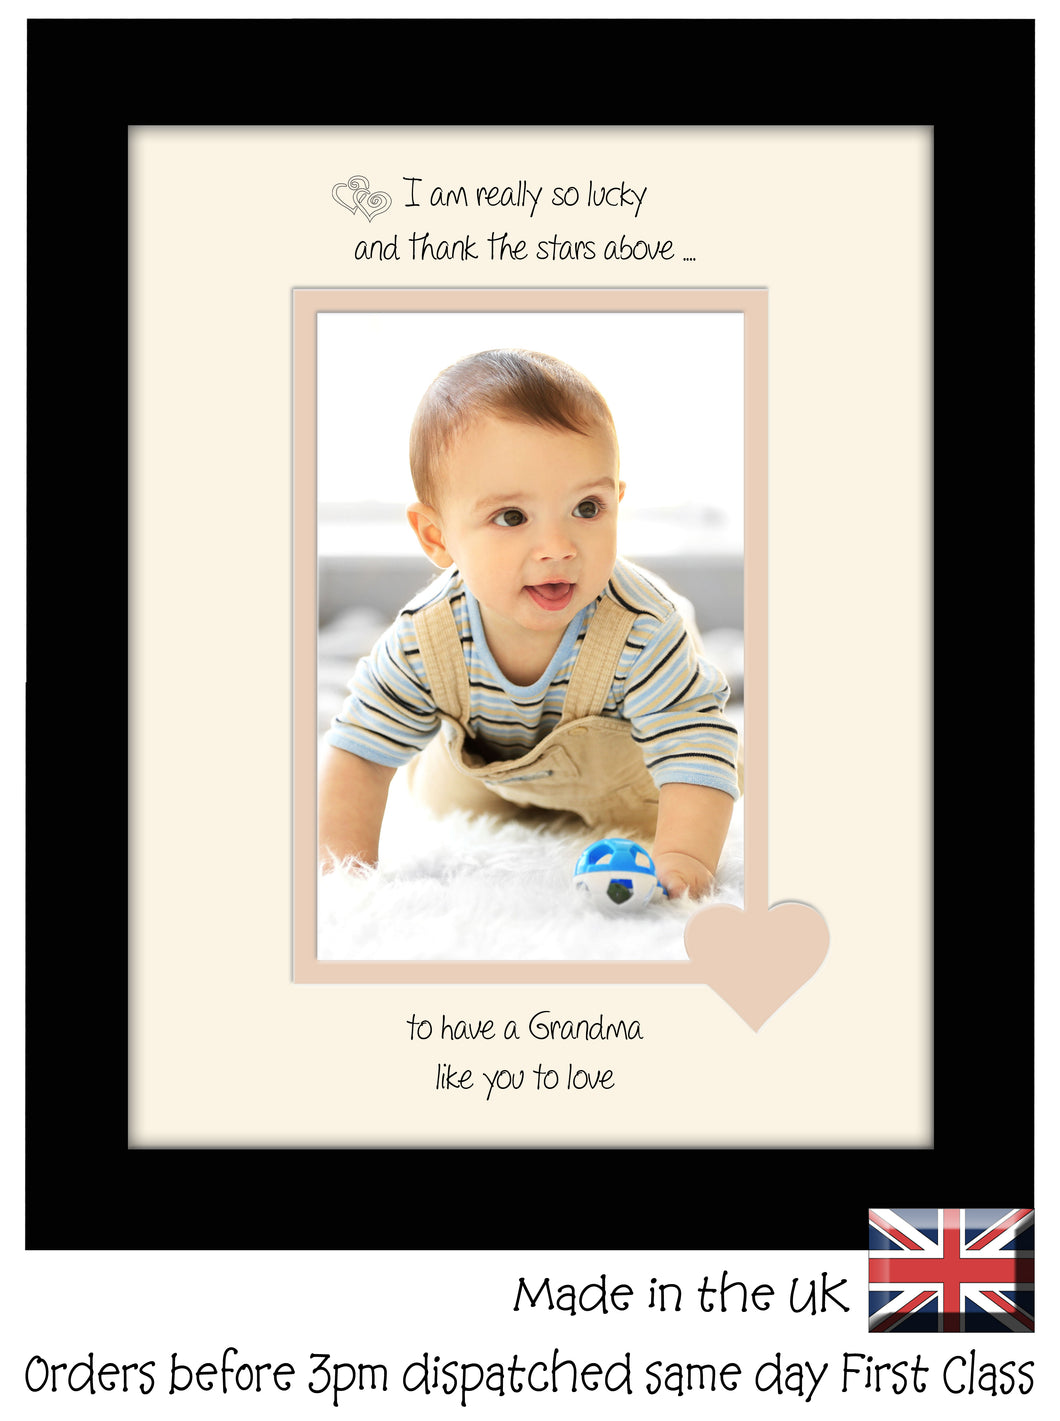 Grandma Photo Frame - I Thank the stars Grandma Portrait photo frame 6